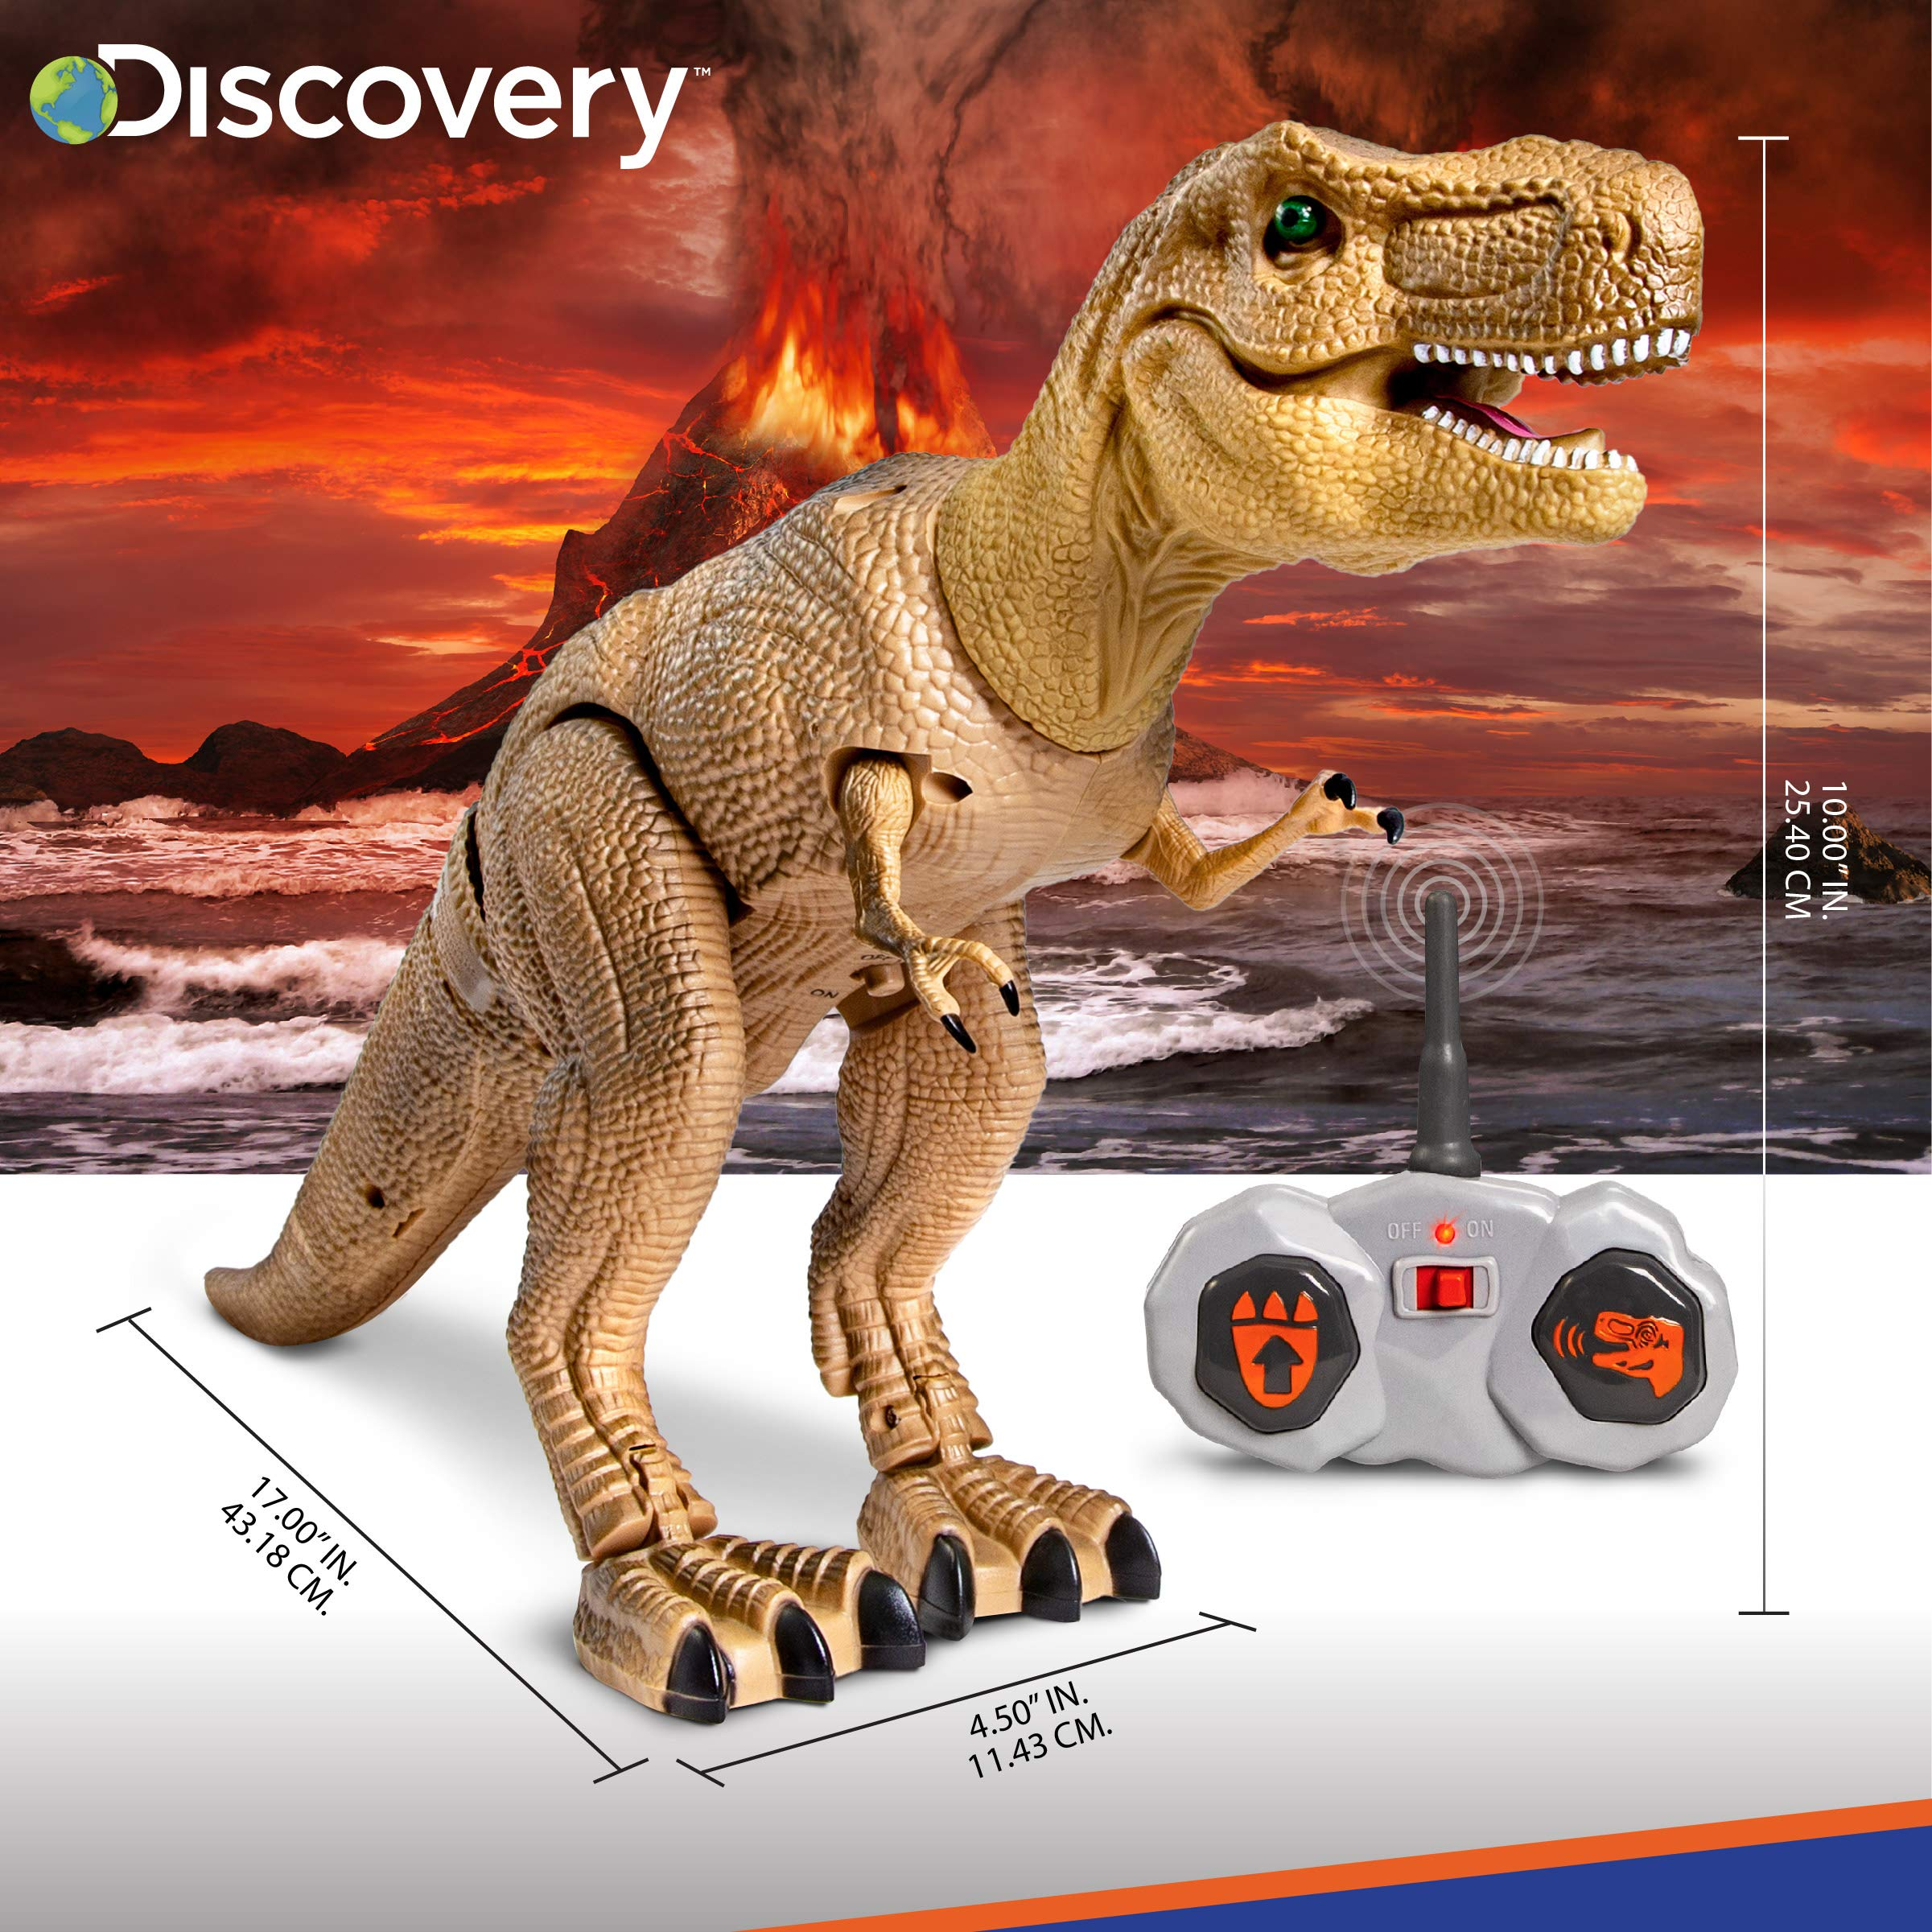 Discovery Kids Remote Control RC T Rex Dinosaur Electronic Toy Action Figure Moving & Walking Robot w/Roaring Sounds & Chomping Mouth, Realistic Plastic Model, Boys & Girls 6 Years Old+ by Discovery Kids (Image #5)